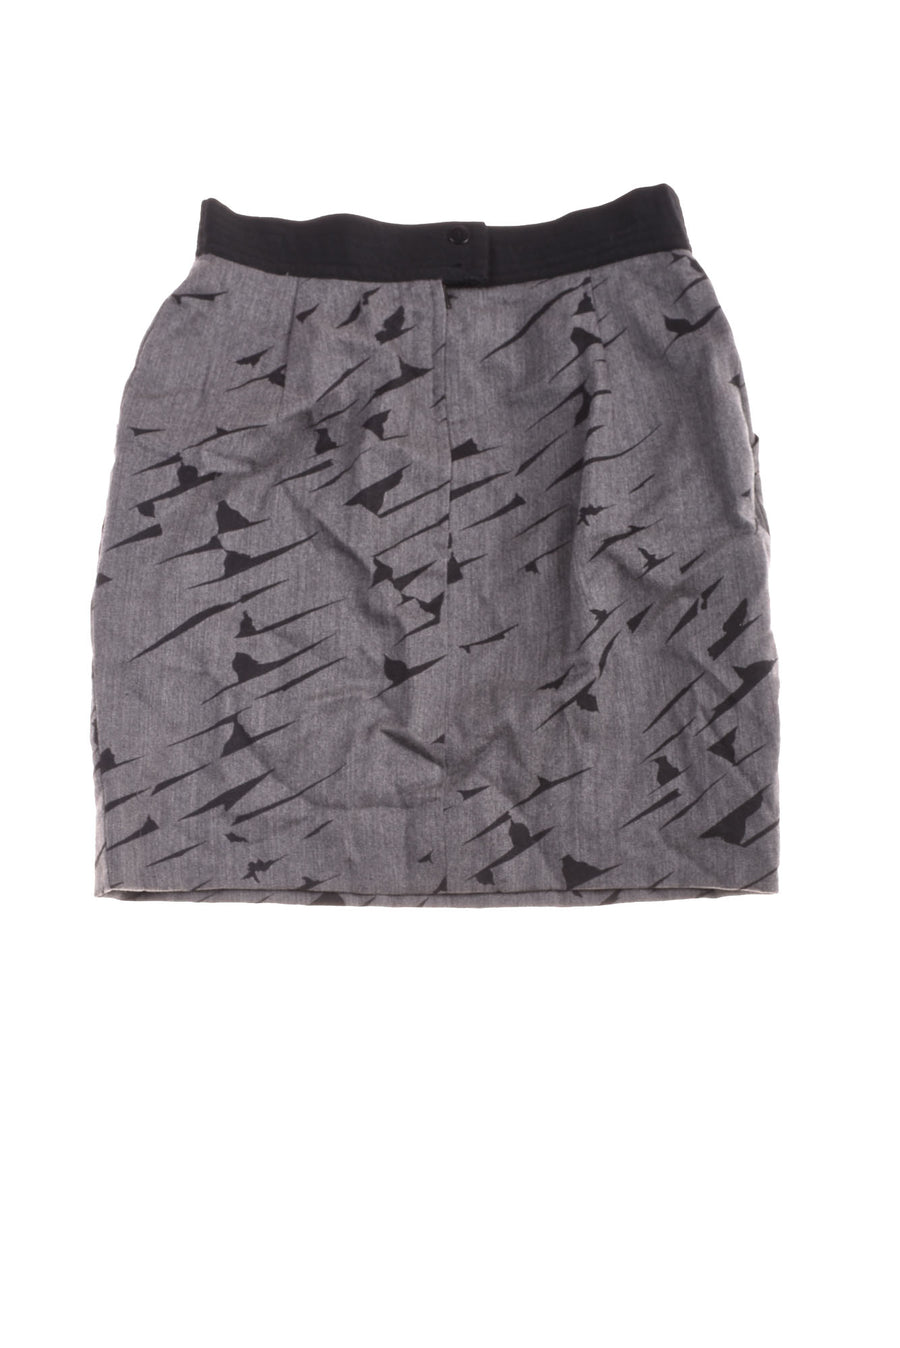 USED Escada Women's Skirt 42 Gray & Black